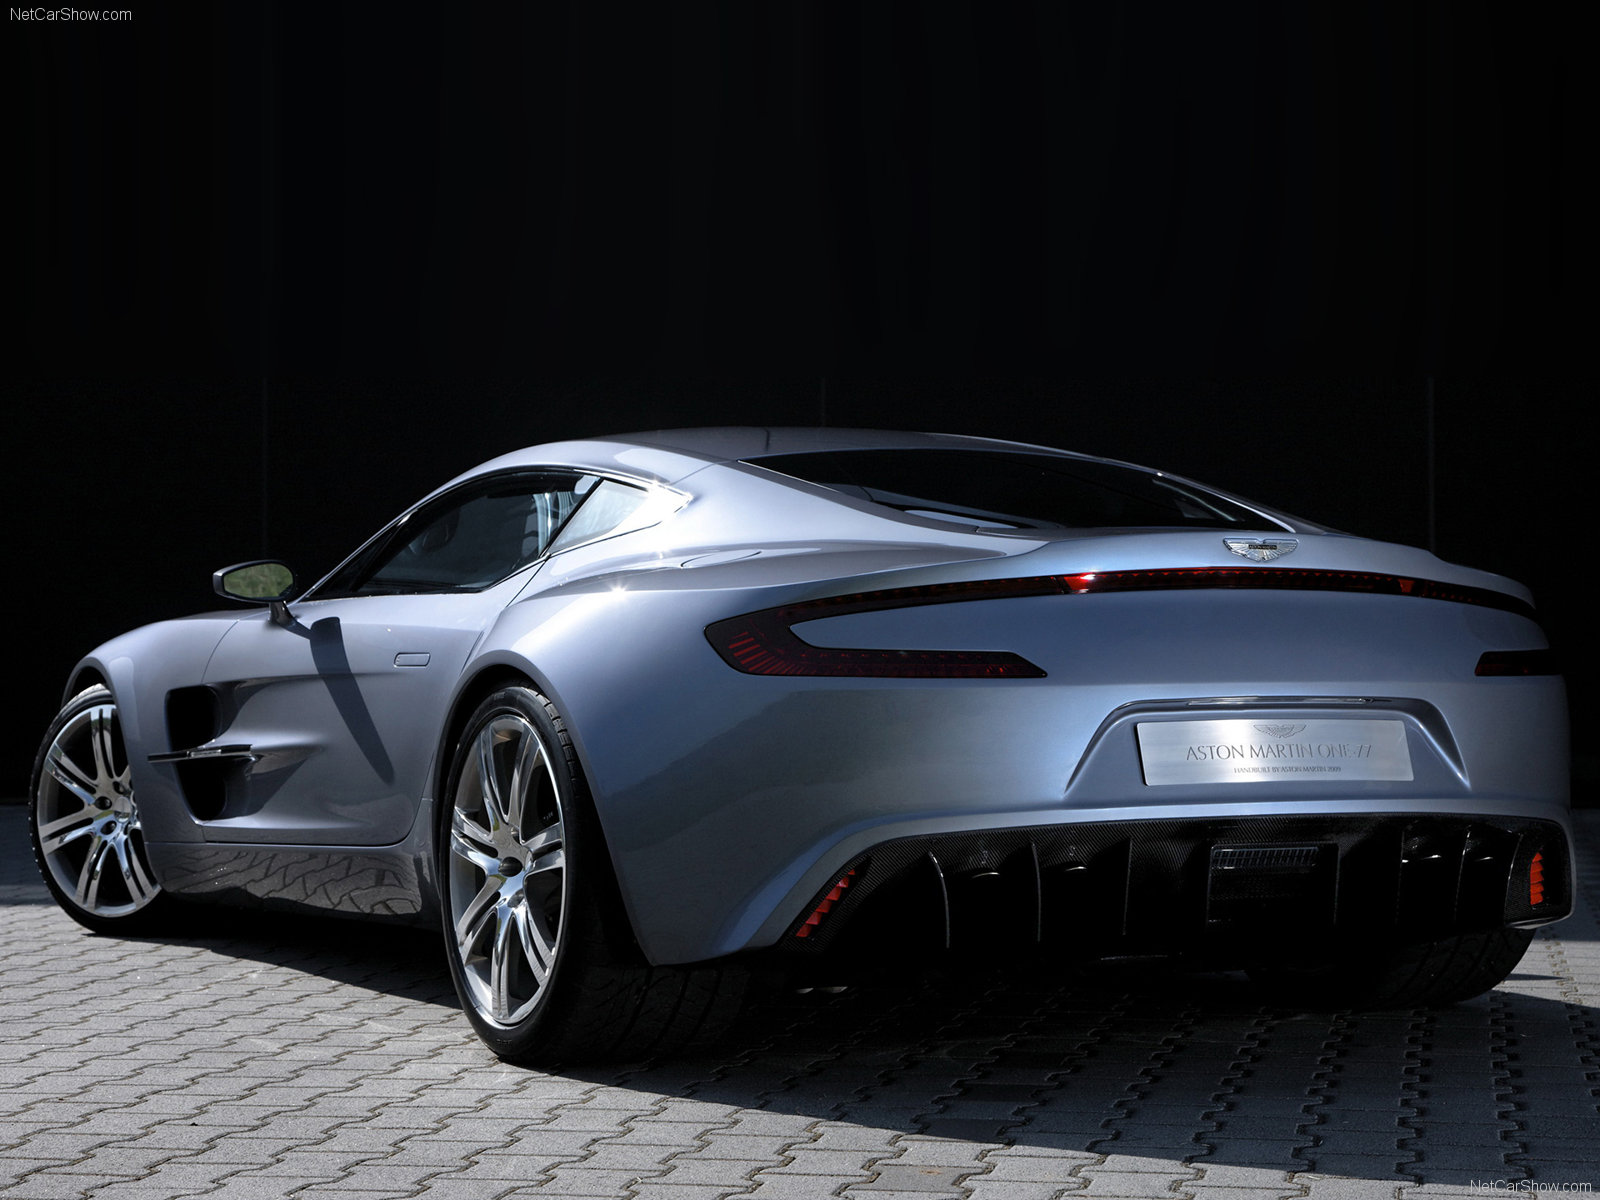 Tuning Aston Martin One-77 Coupe 2012 online, accessories ...